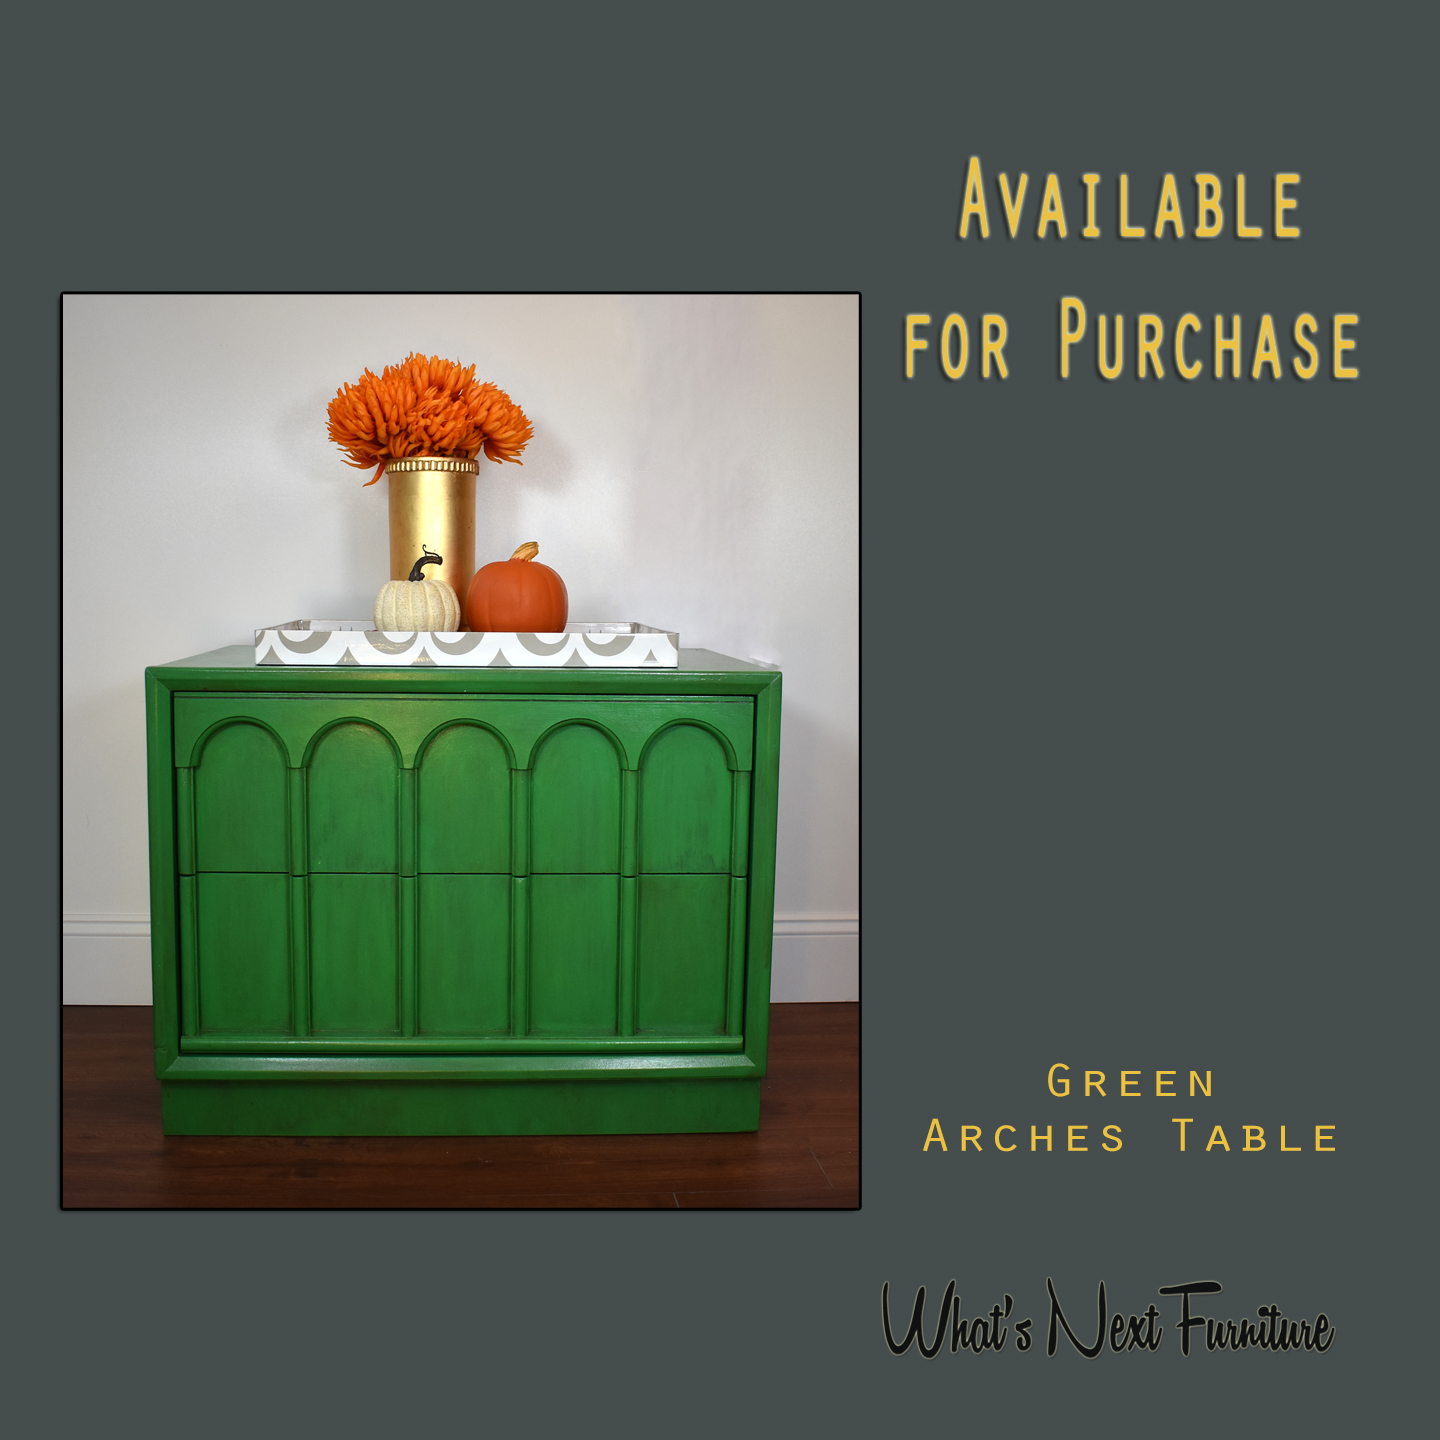 Green arches table available square grey.jpg